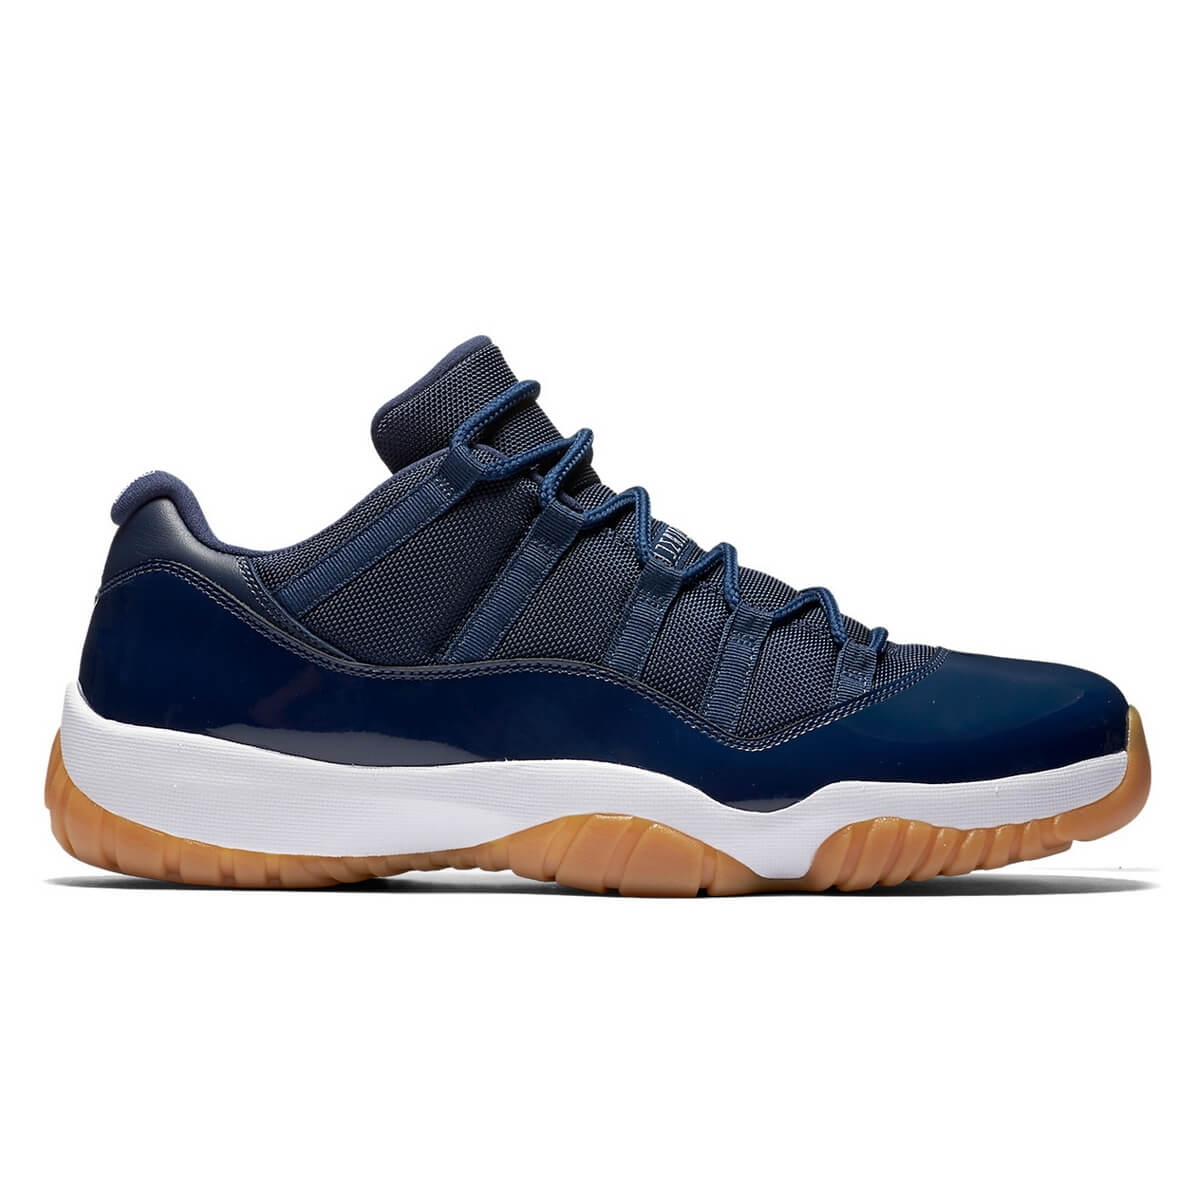 best sneakers 17345 95a7f Nike Air Jordan 11 Retro Low Midnight Navy White Gum Light Brown 528895-405